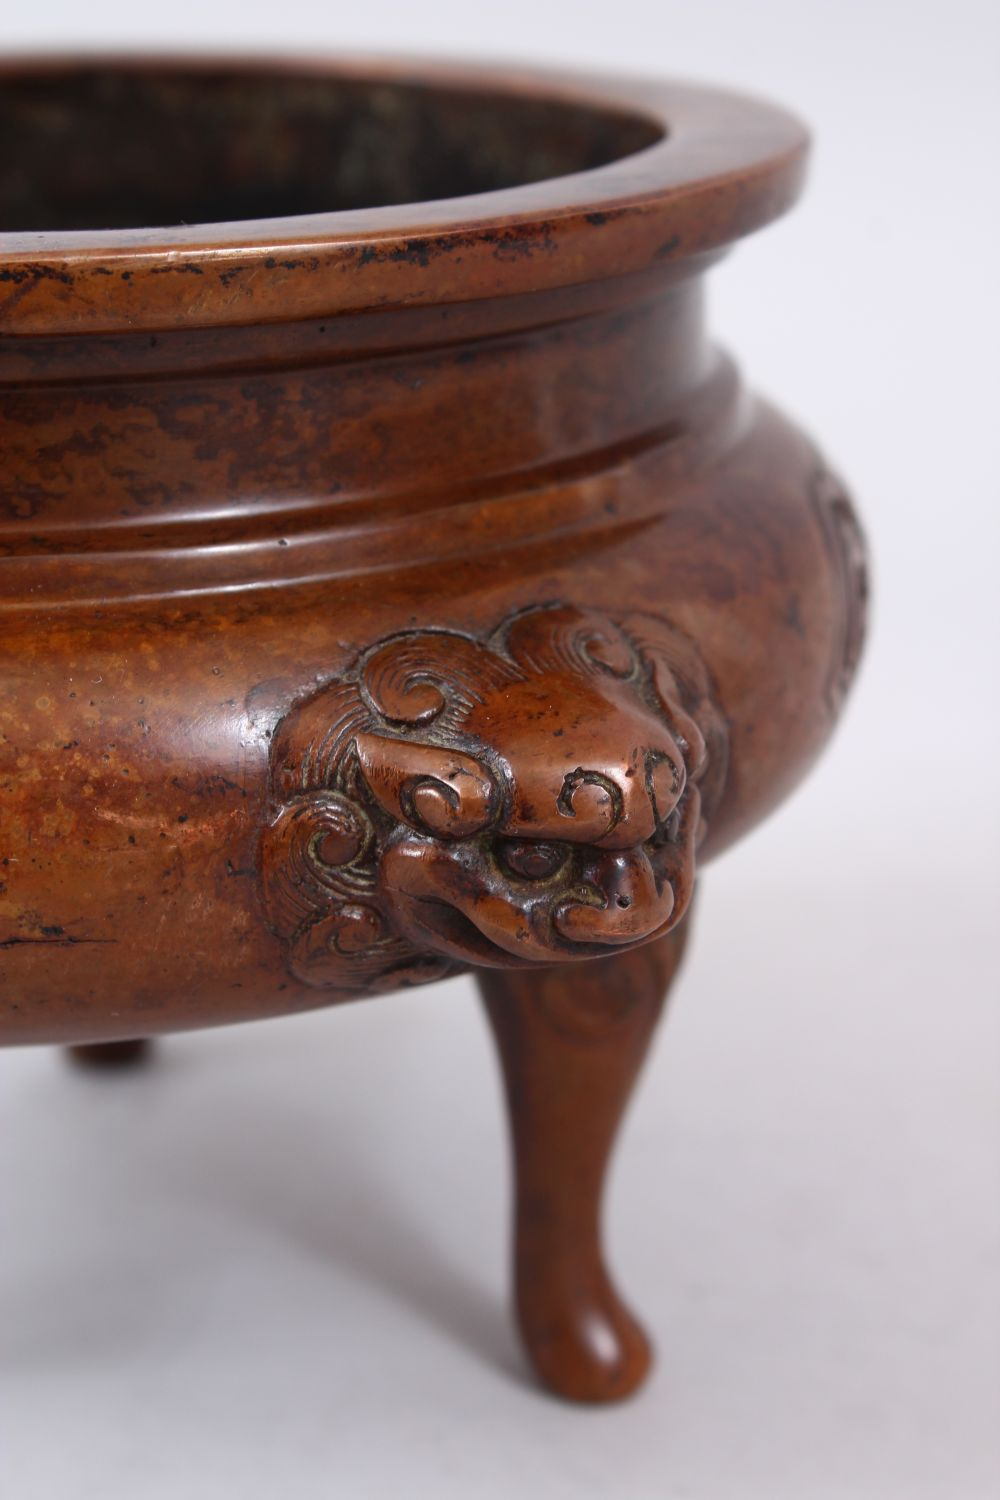 Lot 39 - A 19TH / 20TH CENTURY CHINESE BRONZE TRIPOD CENSER, eith moulded lion dog head handles, panels of